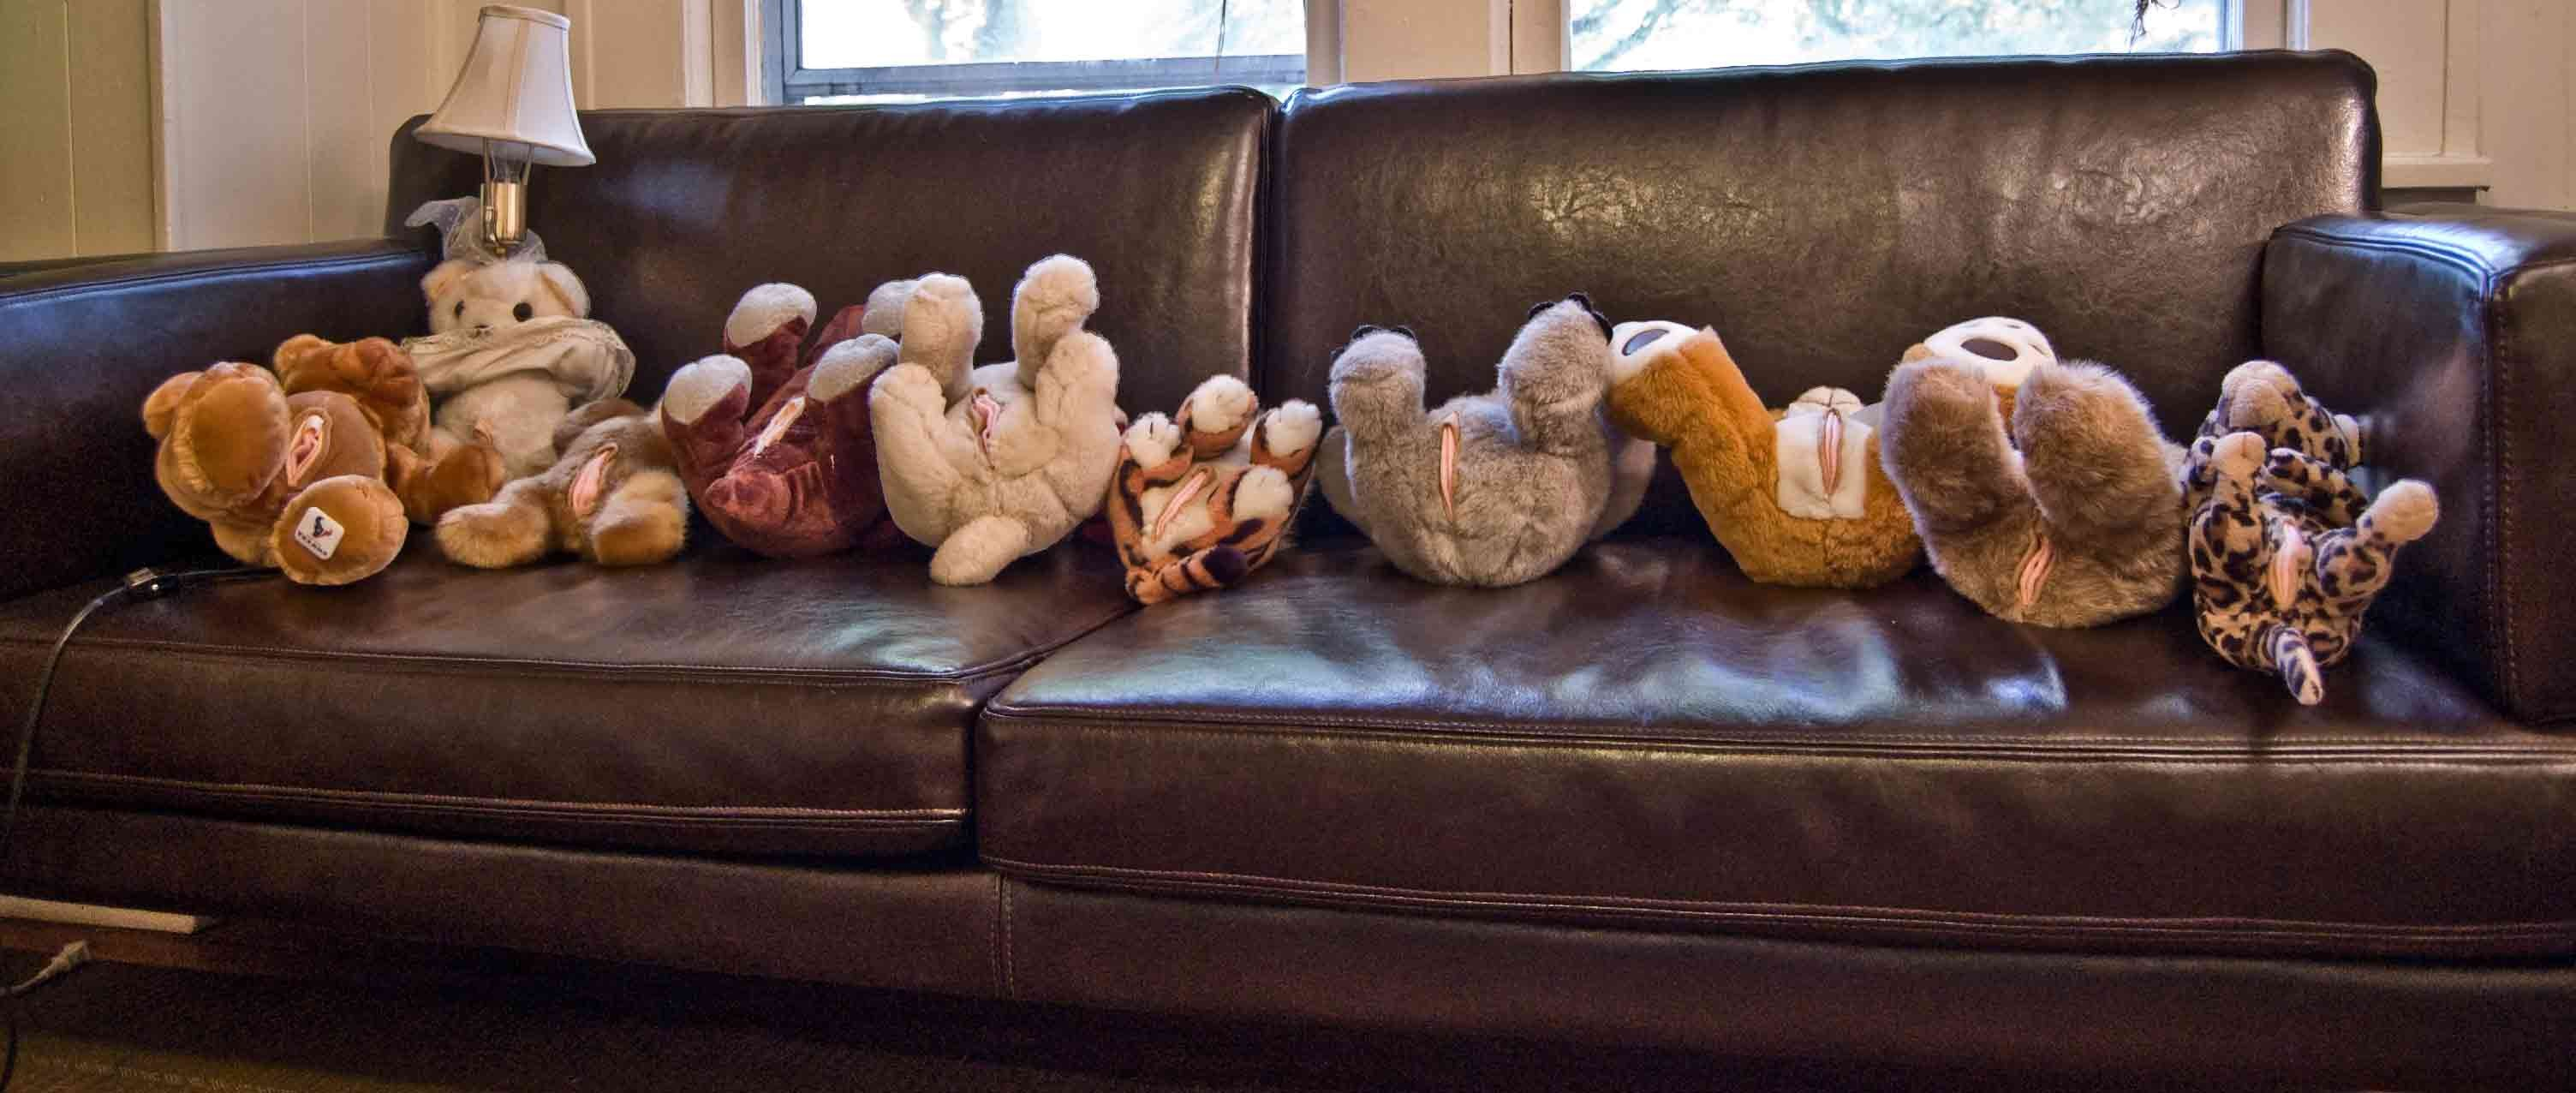 A Teddy Bear Orgy